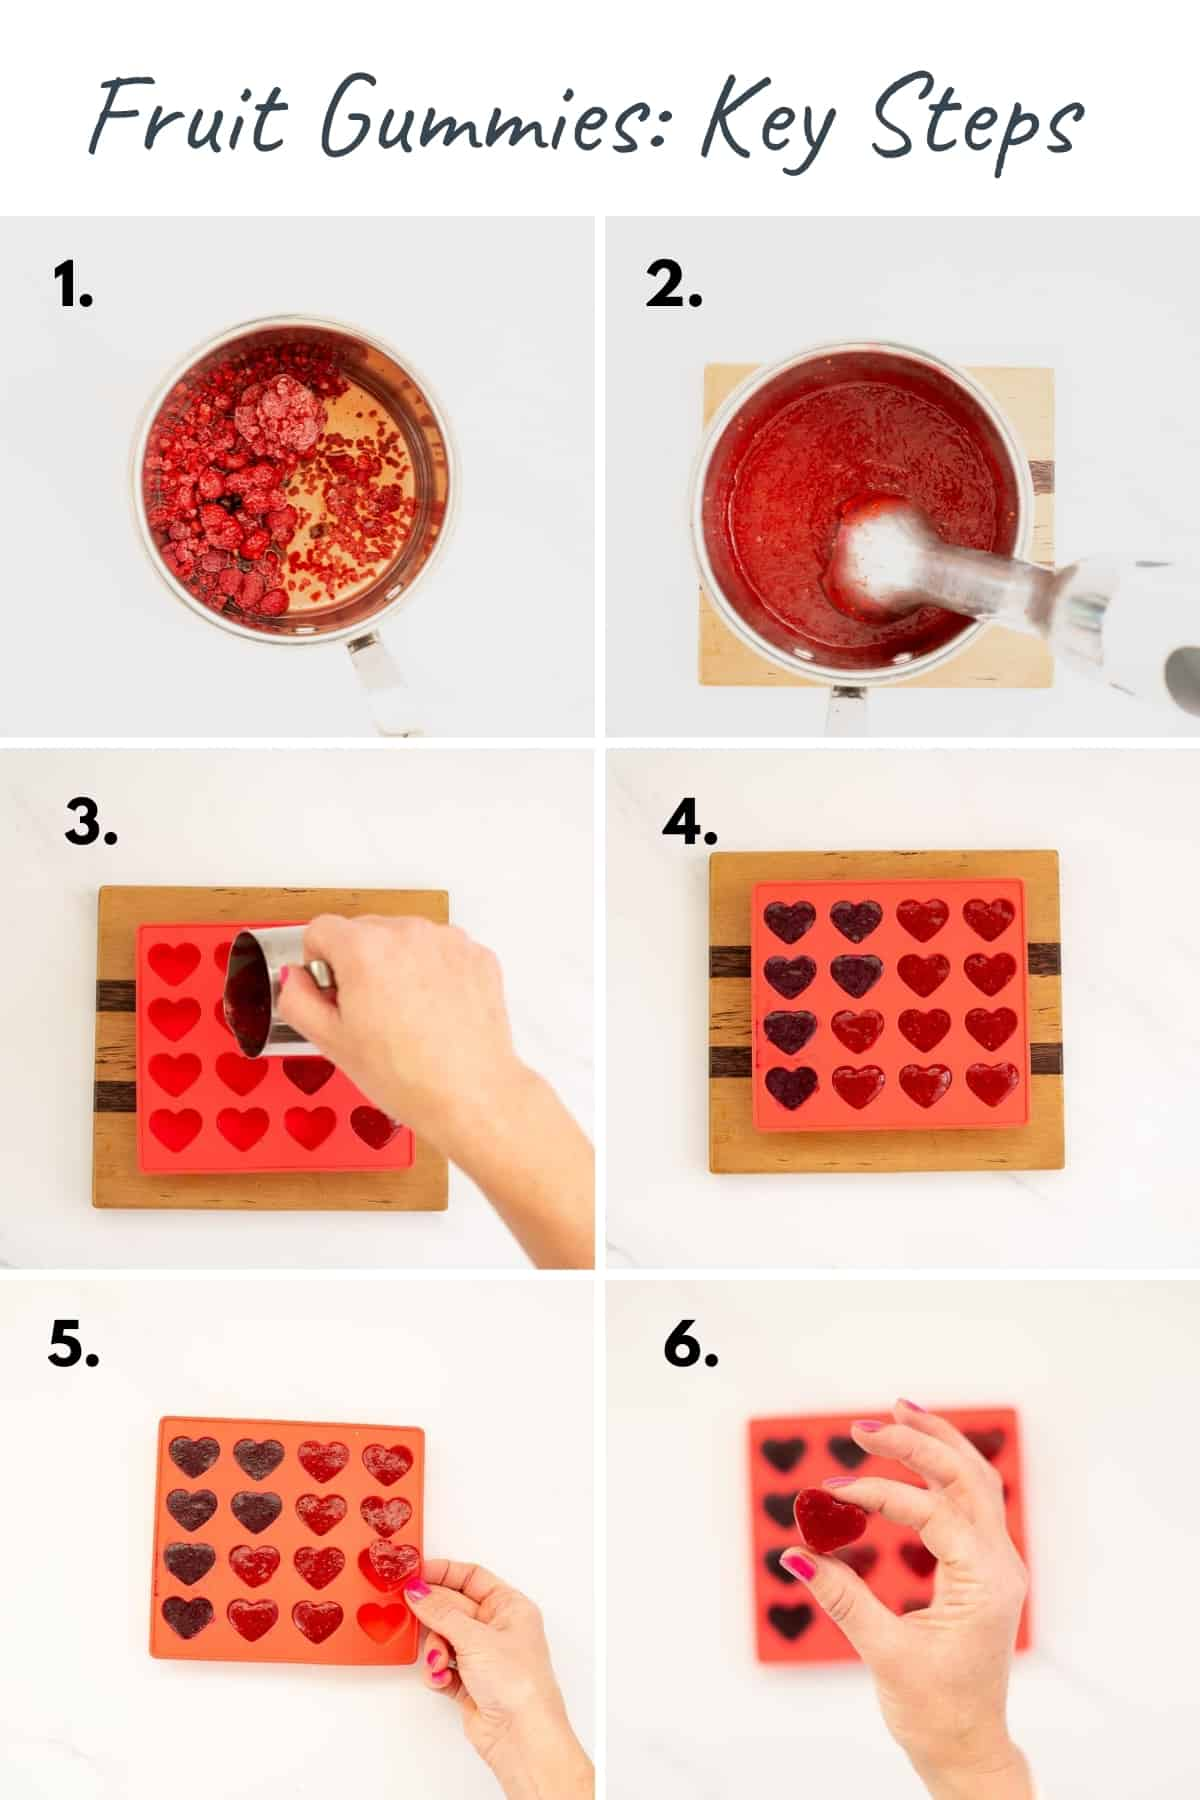 6 photo collage showing the process to make homemade fruit gummies